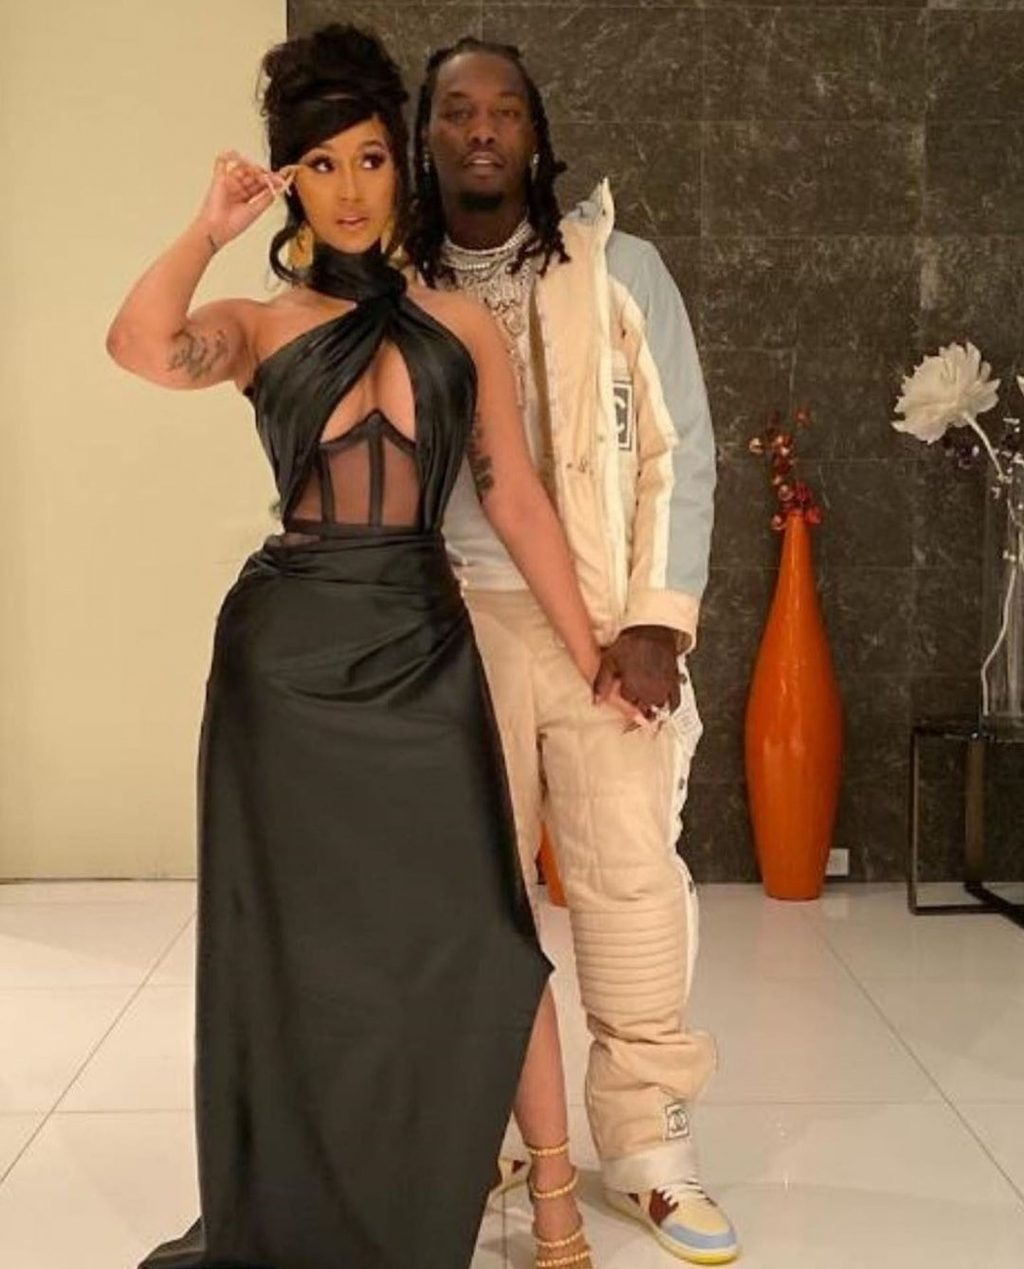 Offset and Cardi B Blow $100K in Ones at a Strip Club in Los Angeles (18 Photos)